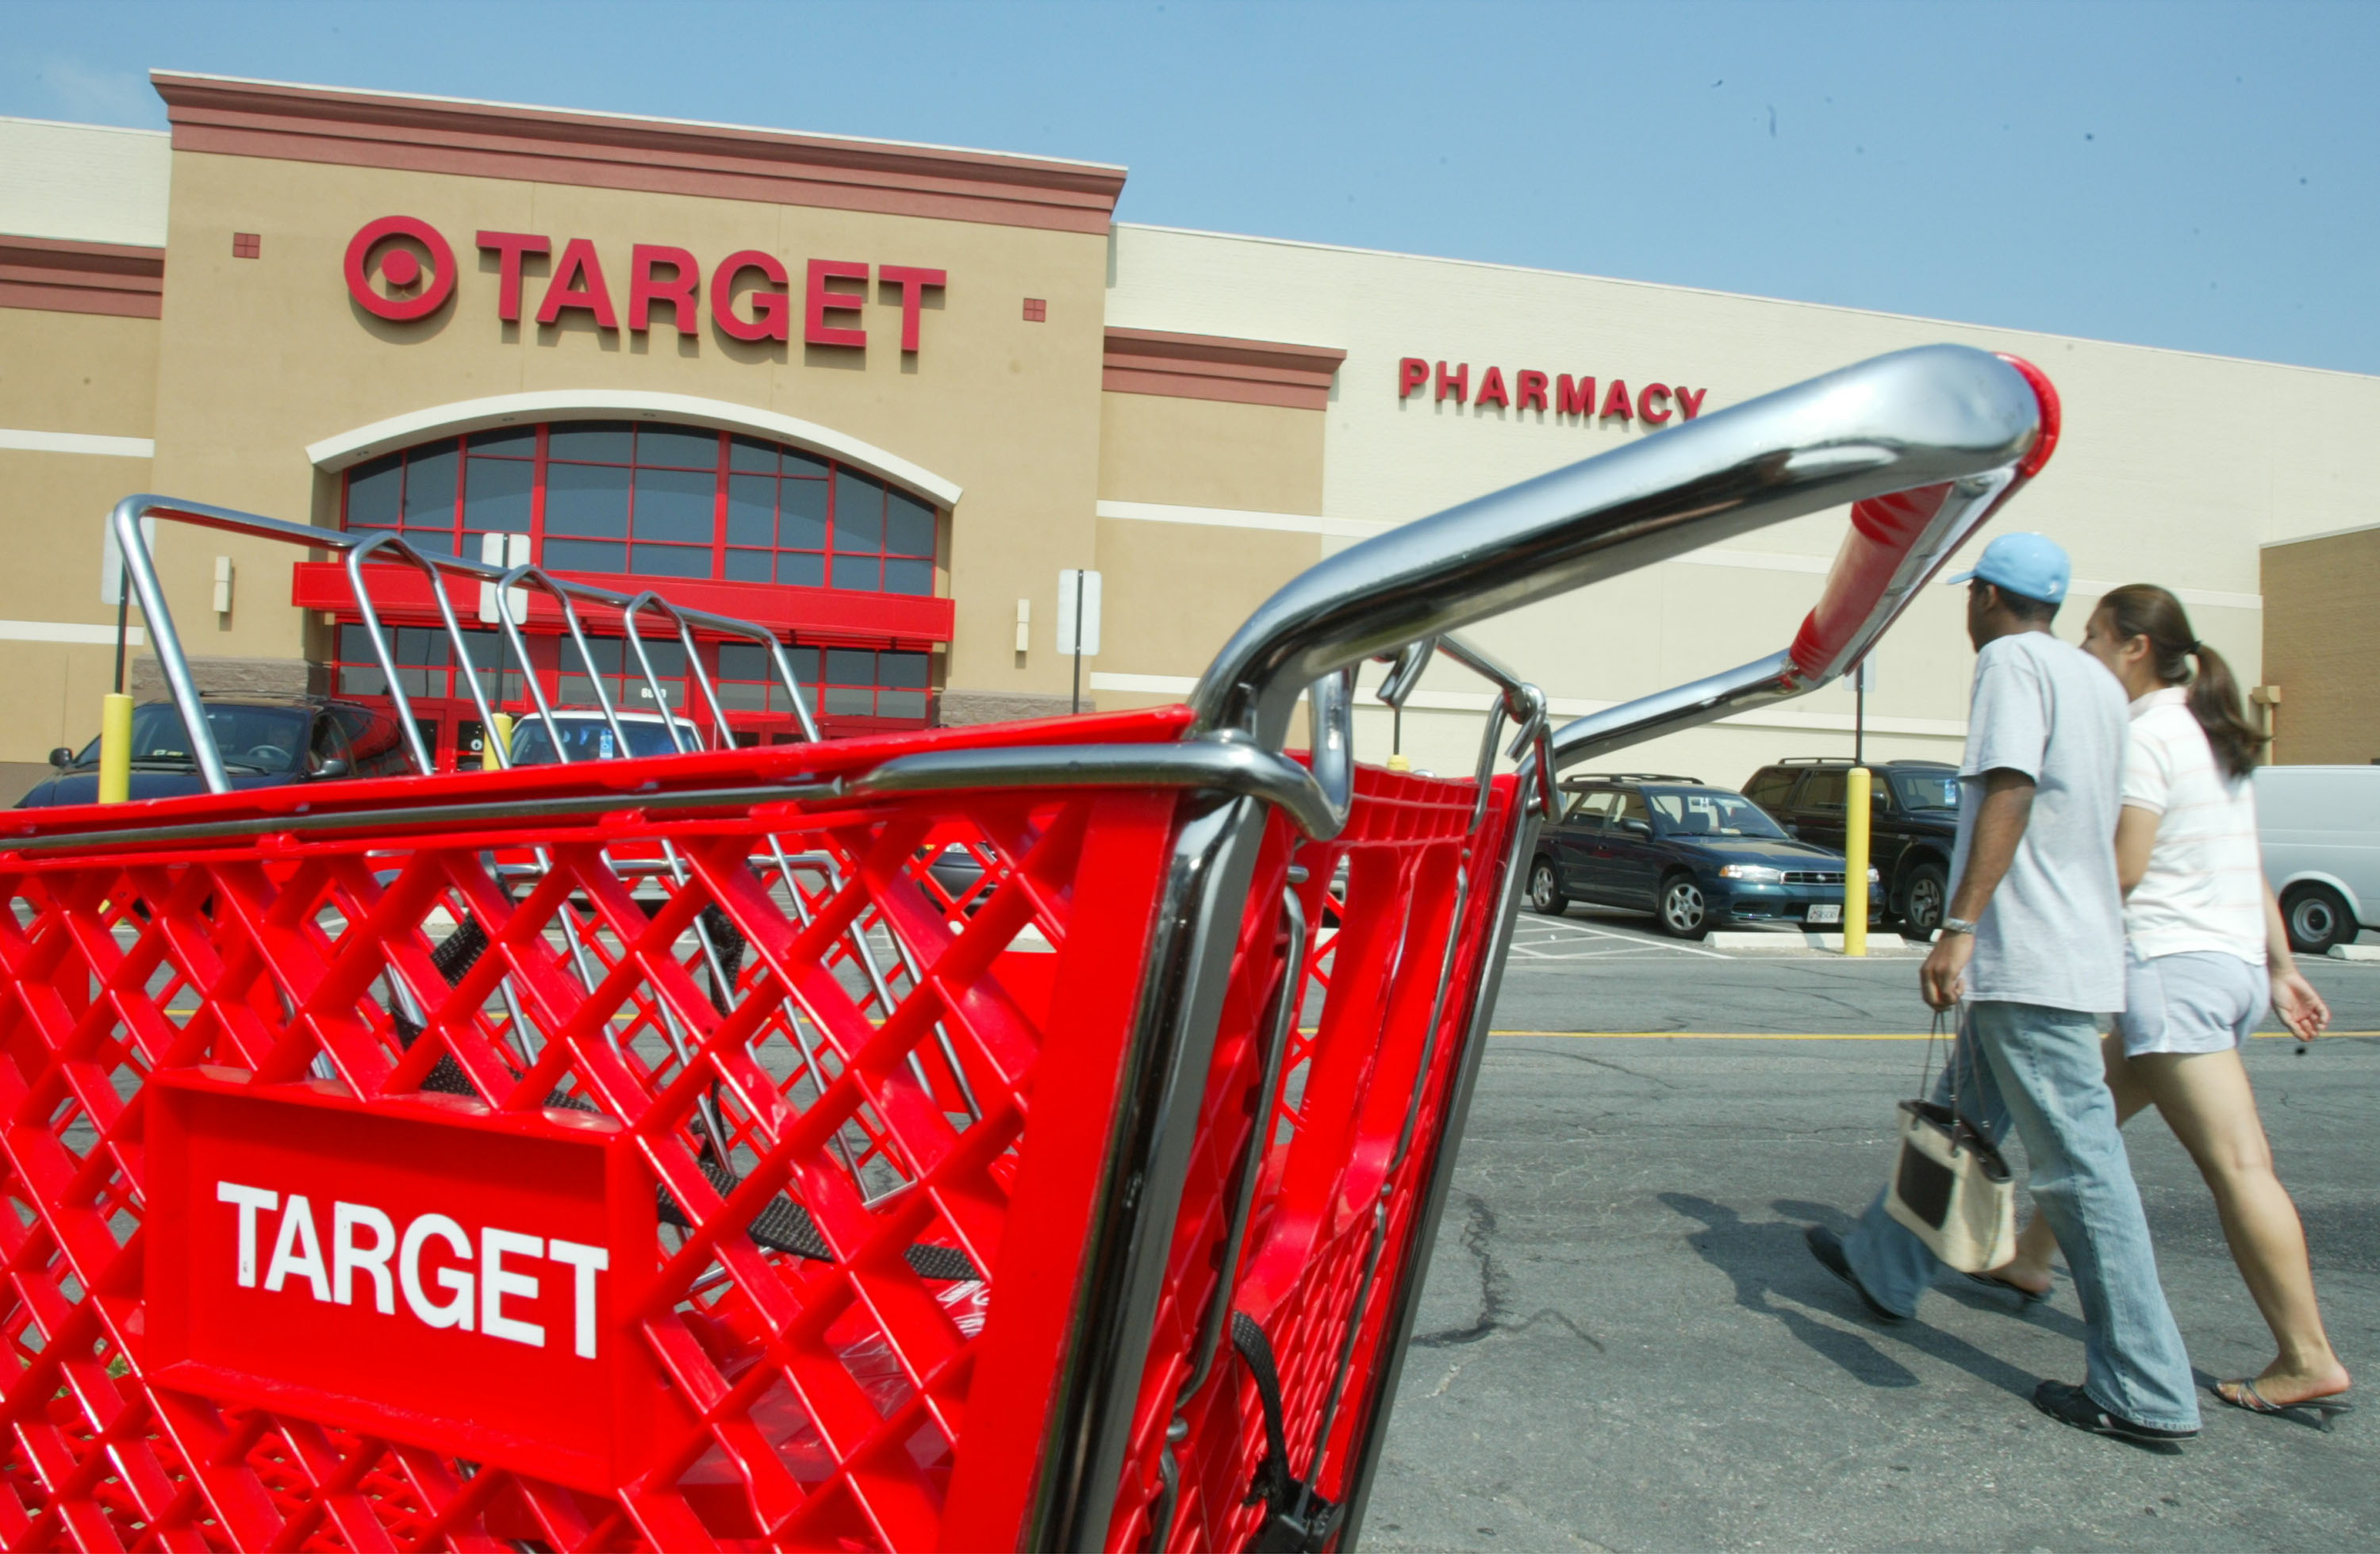 Target became one of the first major retailers to state that transgender customers are welcome to use the bathroom corresponding to the gender of their choice.